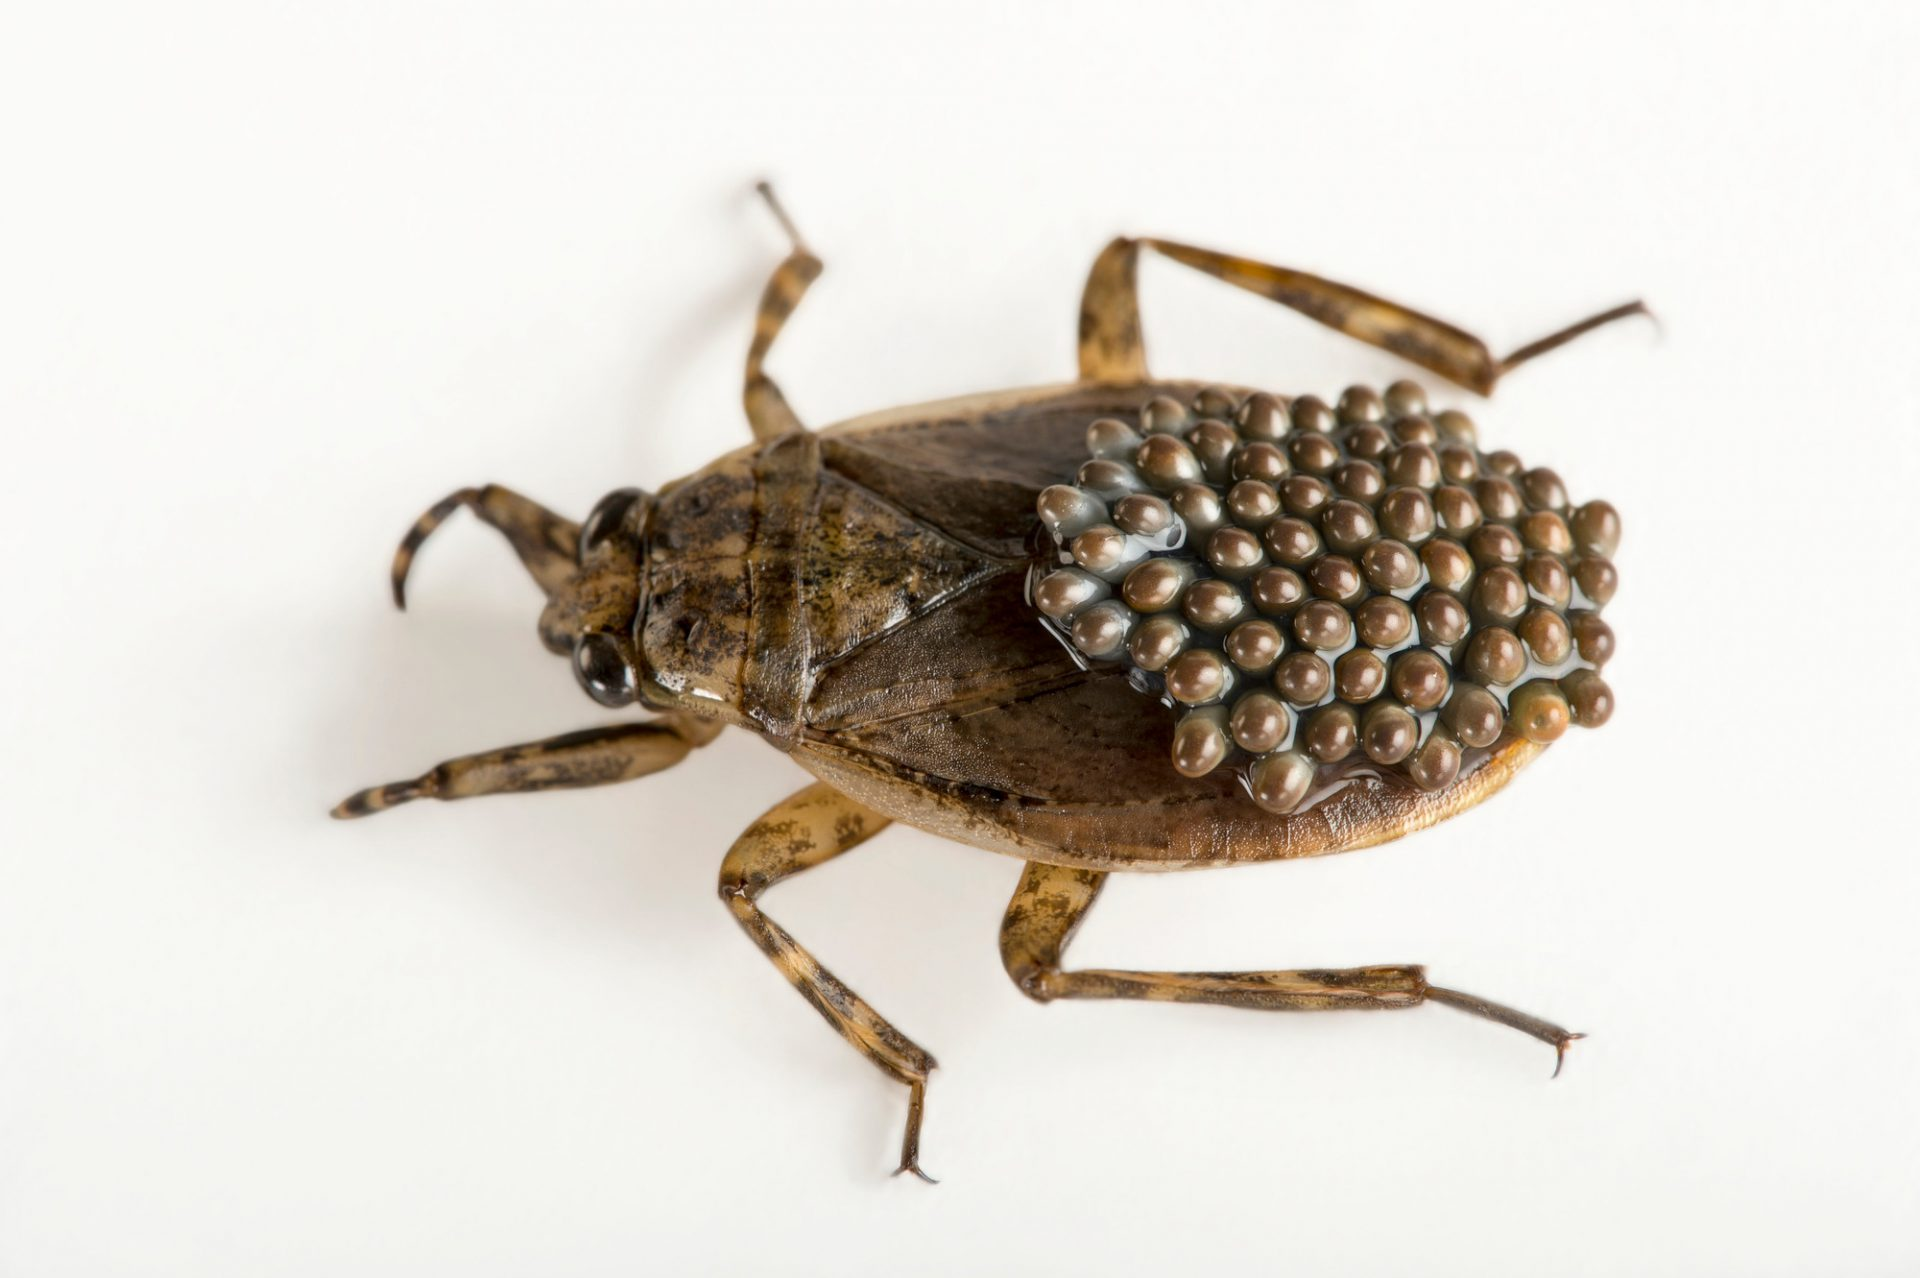 Picture of a male giant water bug (Abedus herberti) carrying eggs on his back at the Cincinnati Zoo.